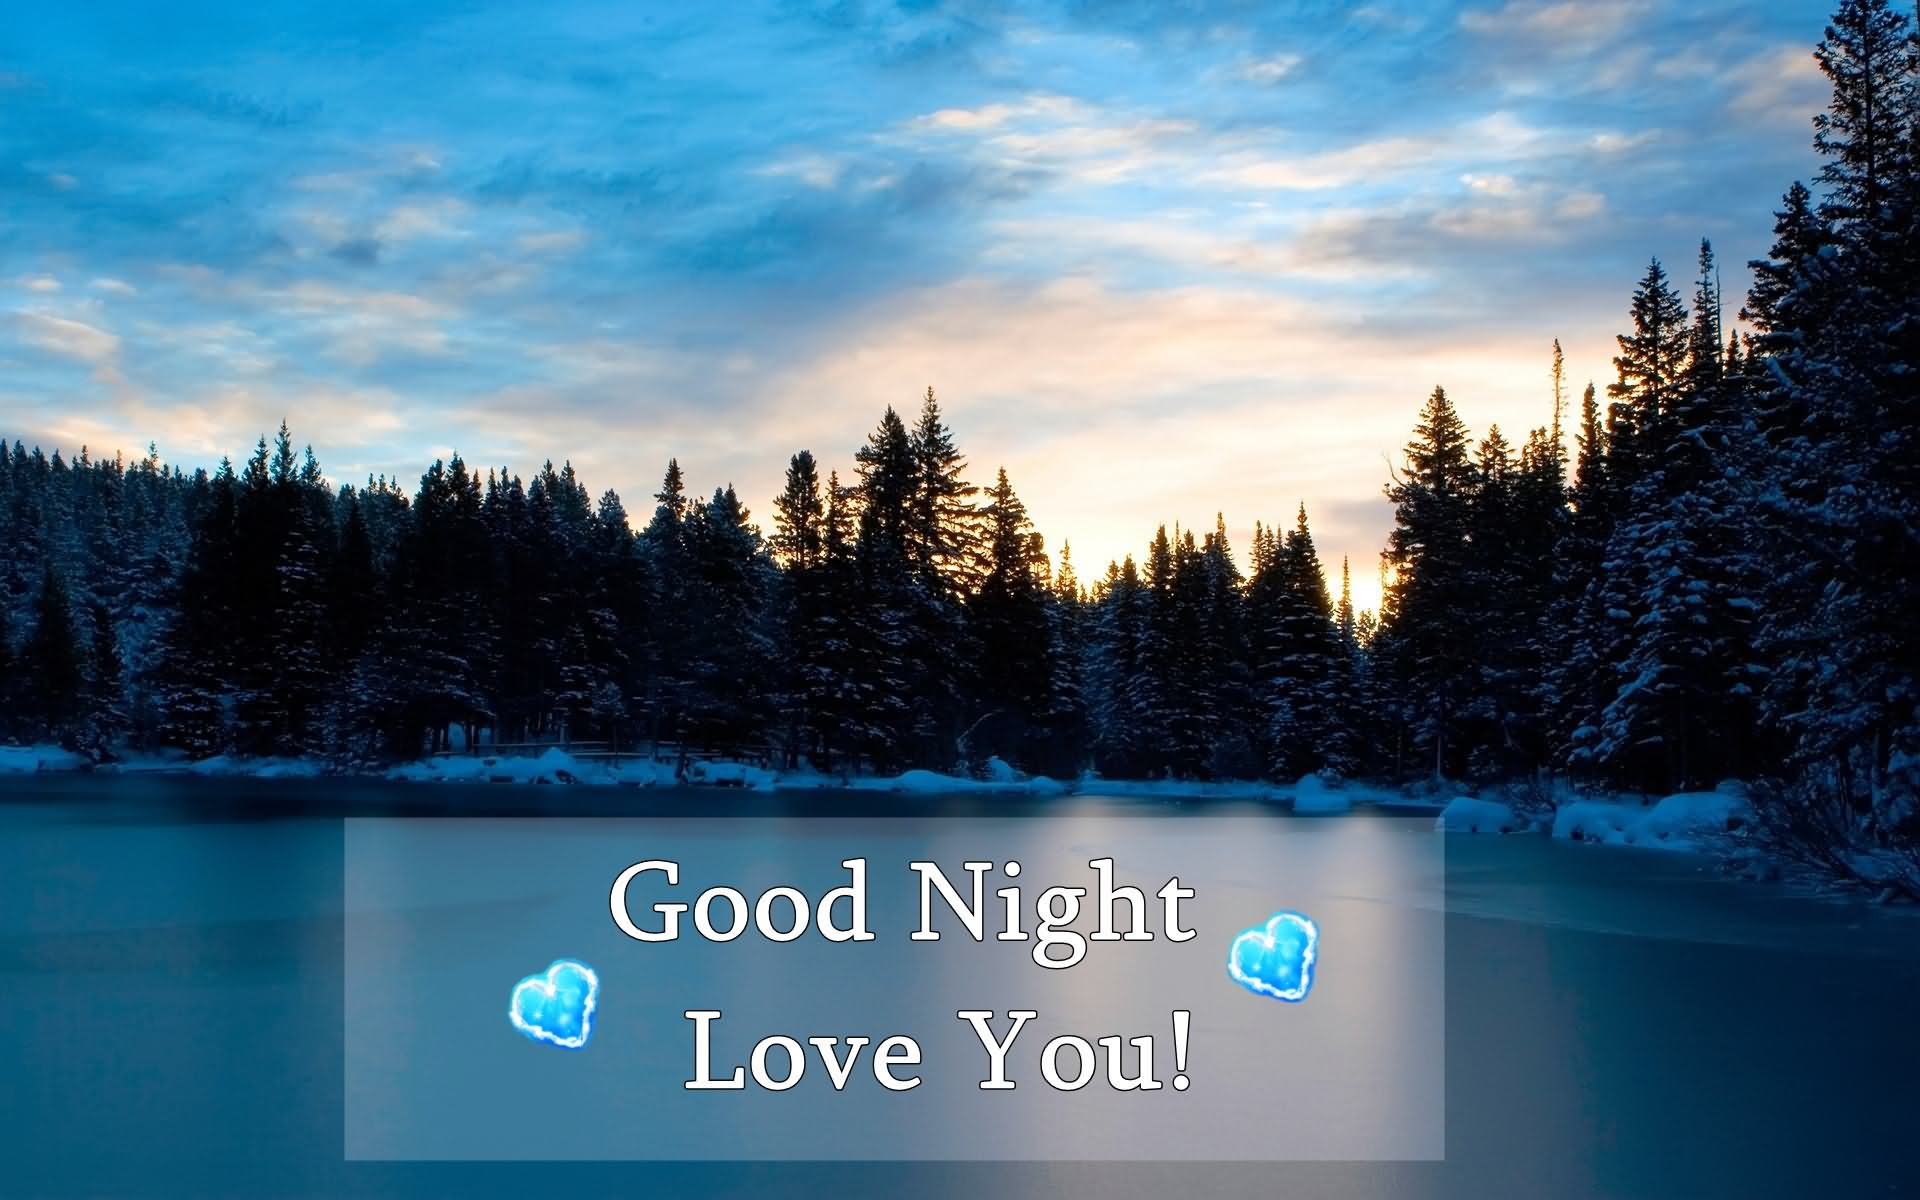 Love Wallpaper For Good Night : 15 Awesome Good Night Love Images